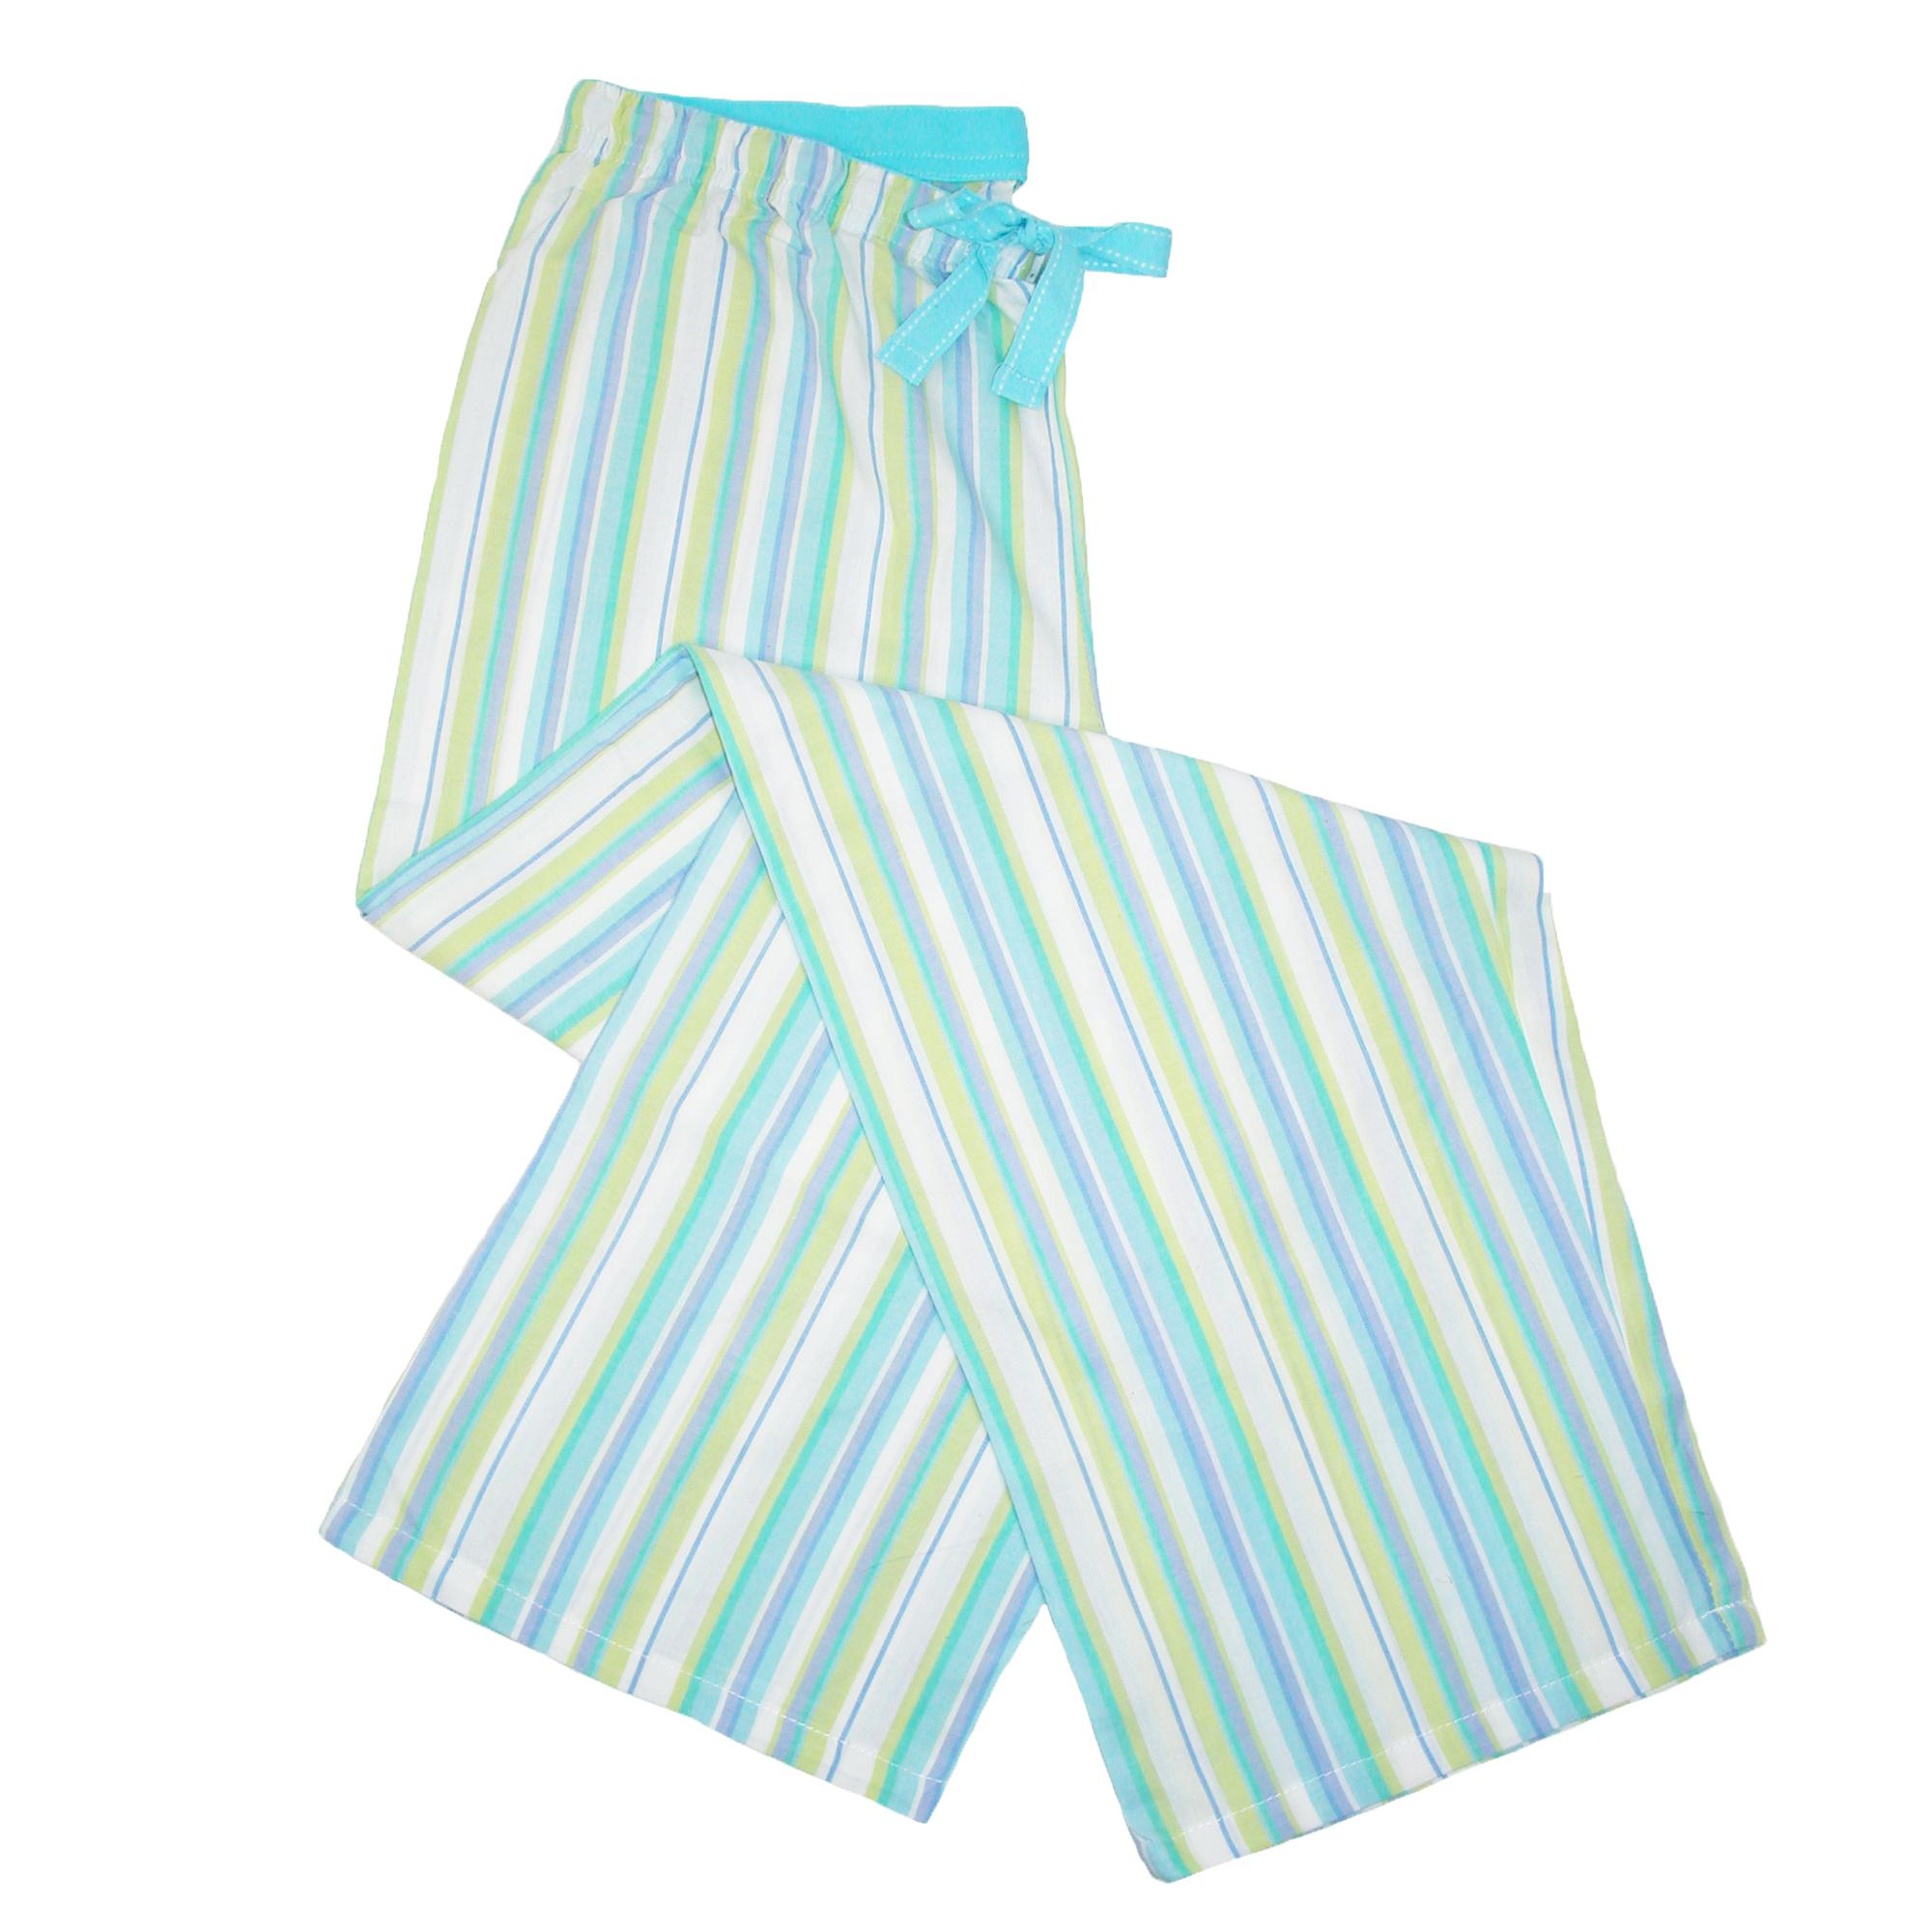 Find Cotton Pajamas like Men's Cotton Pajamas, Women's Cotton Pajamas, Kids Cotton Pajamas and more at Macy's. Macy's Presents: The Edit- A curated mix of fashion and inspiration Check It Out. Charter Club Short Sleeve Top and Cropped Pant Cotton Pajama Set, Created for Macy's.